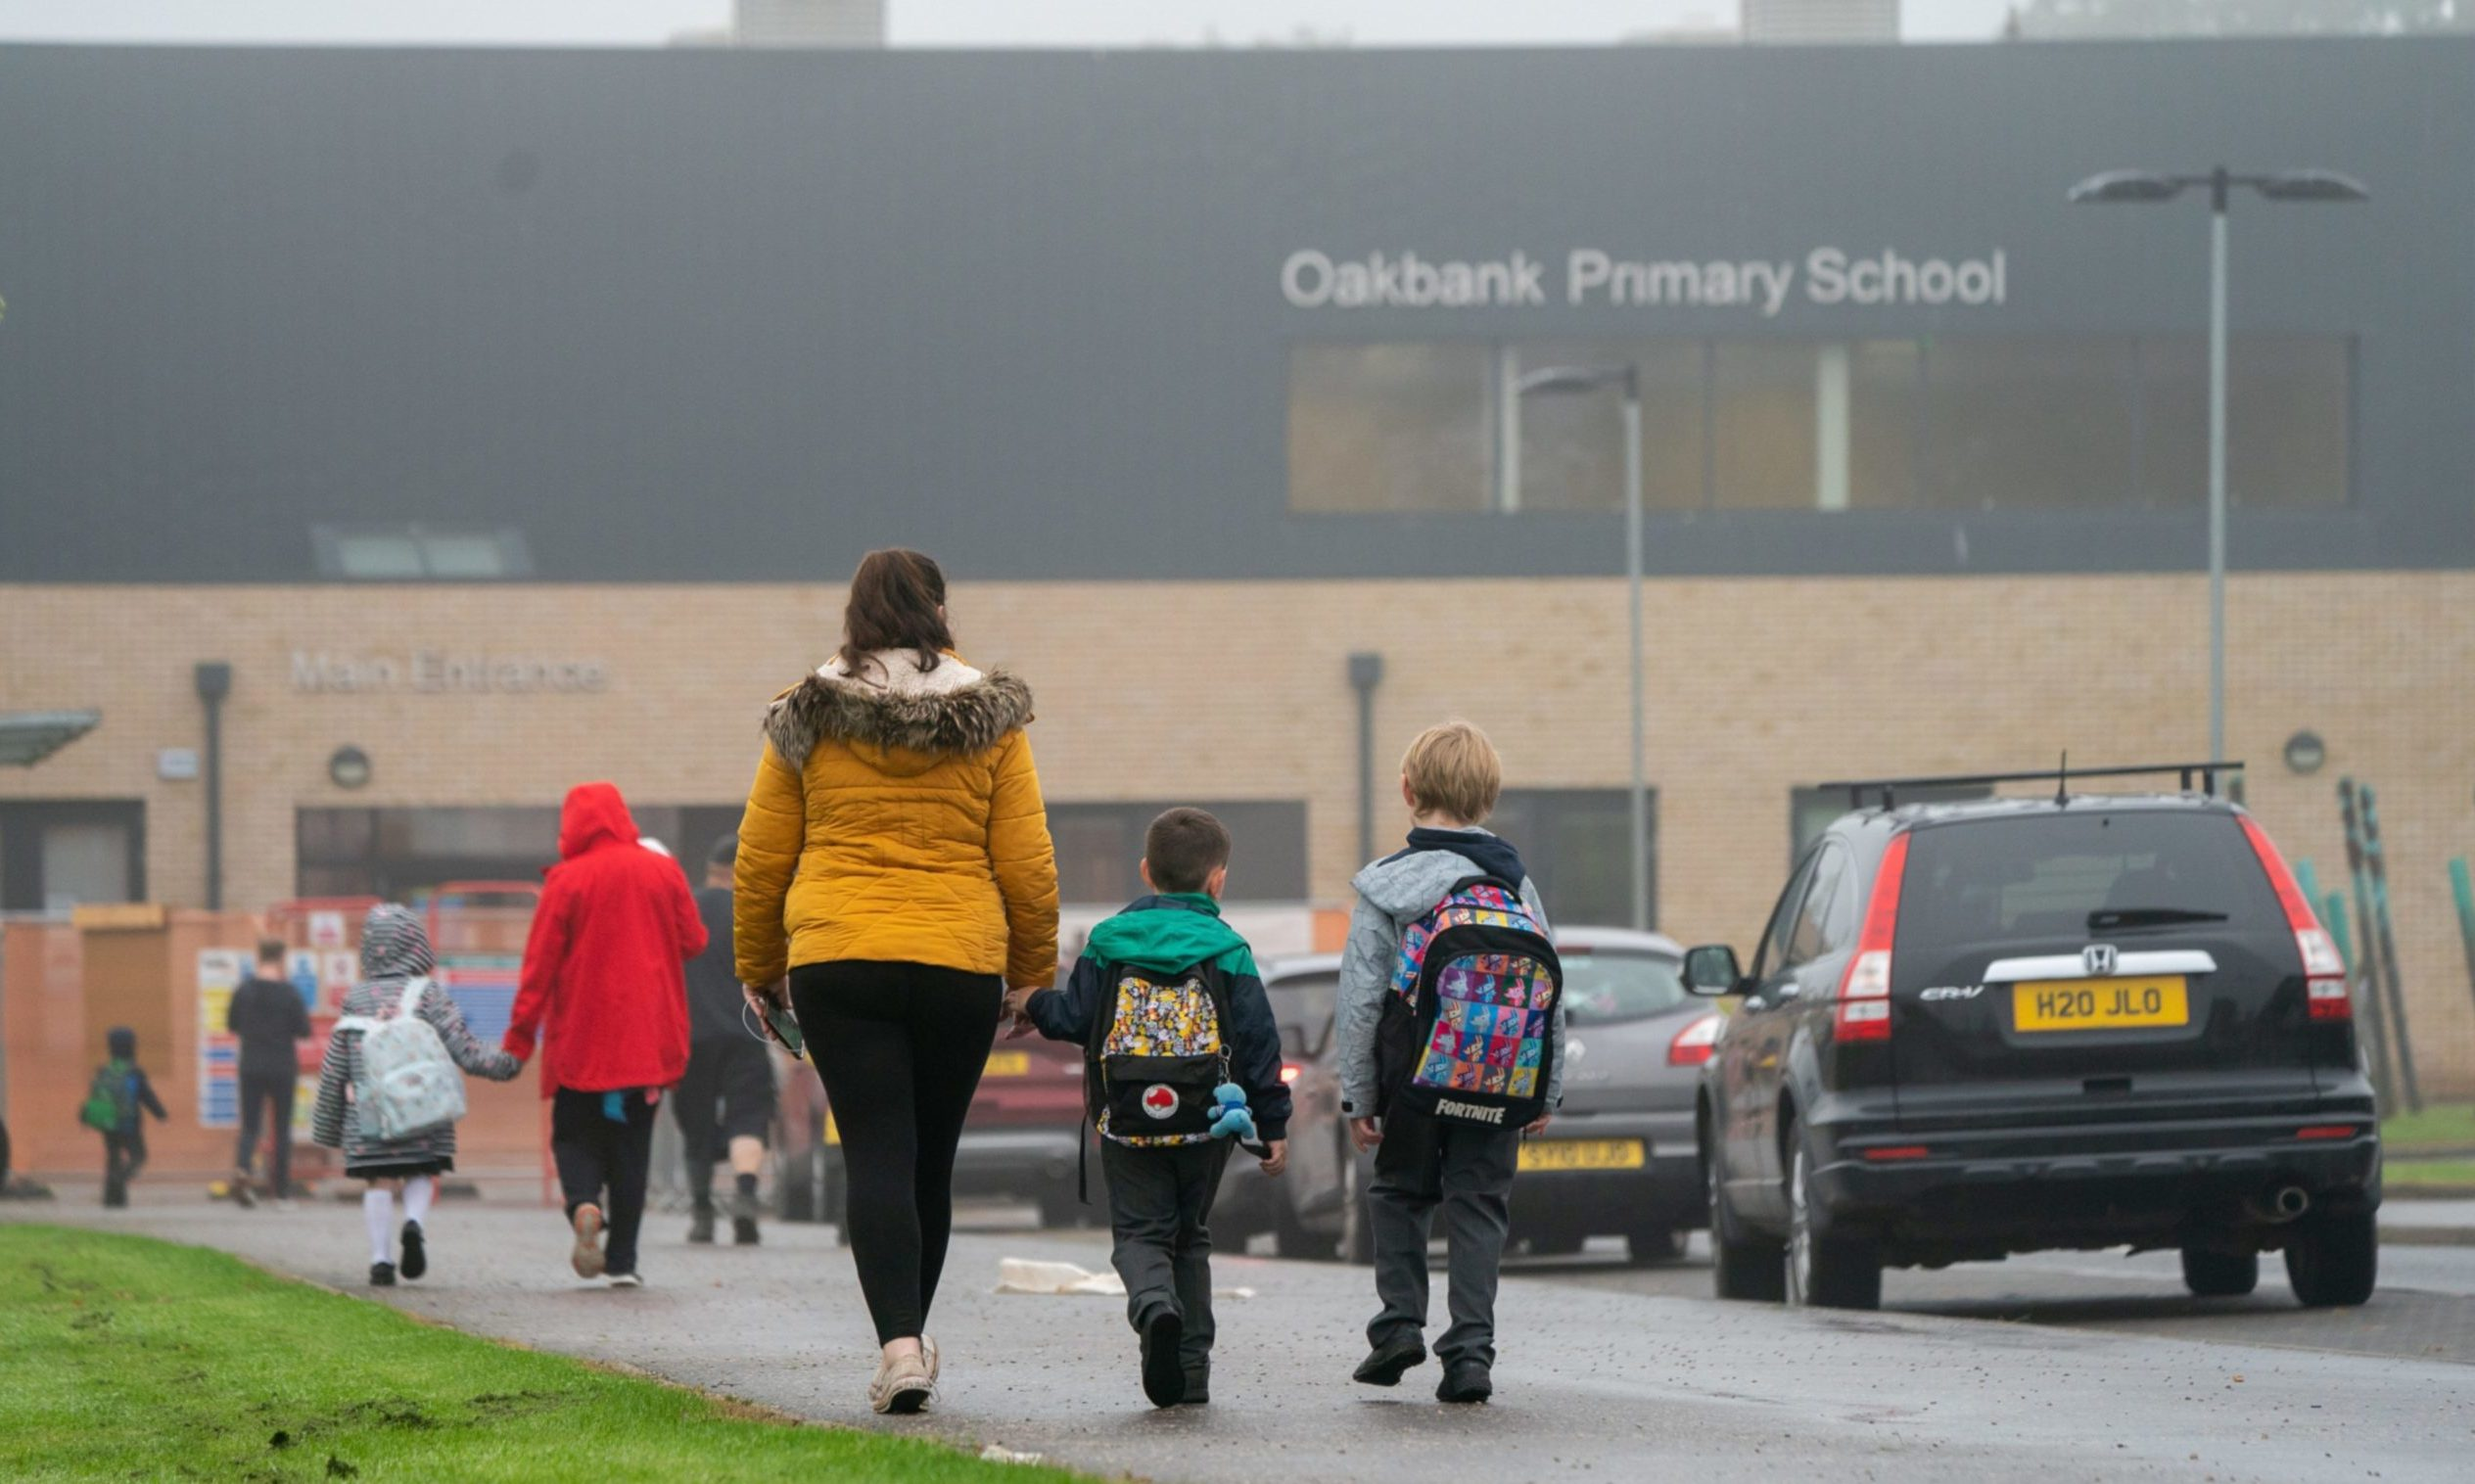 Pupils arriving at Oakbank Primary School, where one child tested positive for Covid-19 after the summer break.